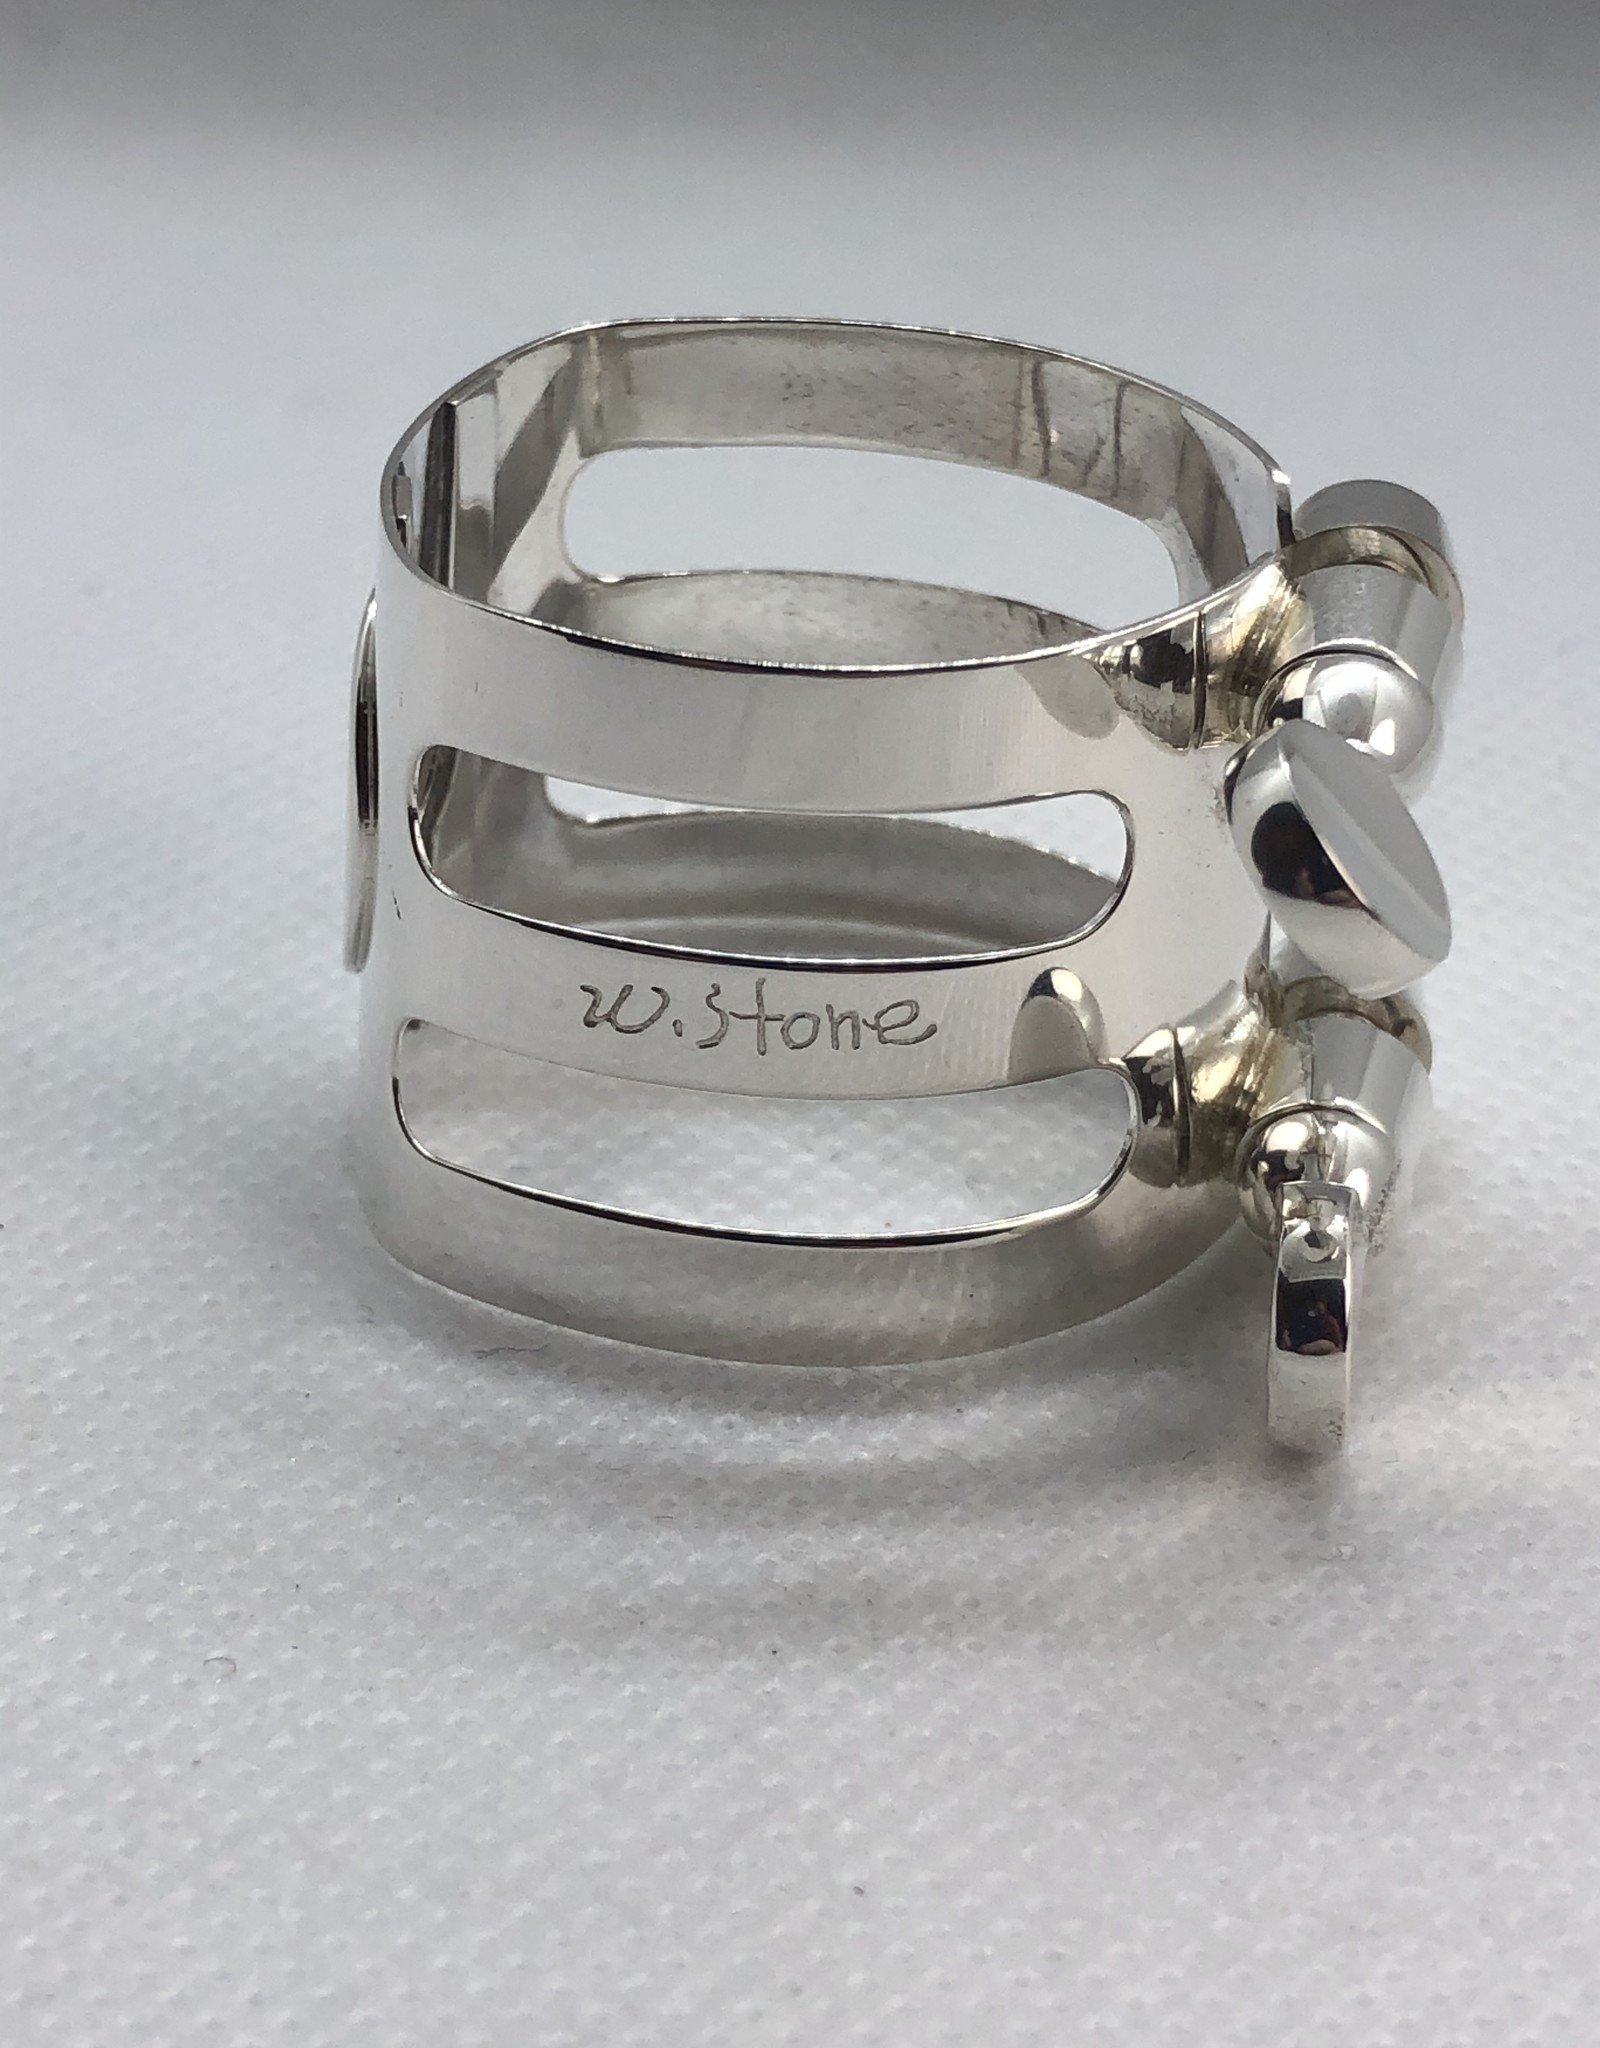 Ishimori Wood Stone Tenor Saxophone Metal Ligature for Selmer Rubber Mouthpiece Solid Silver